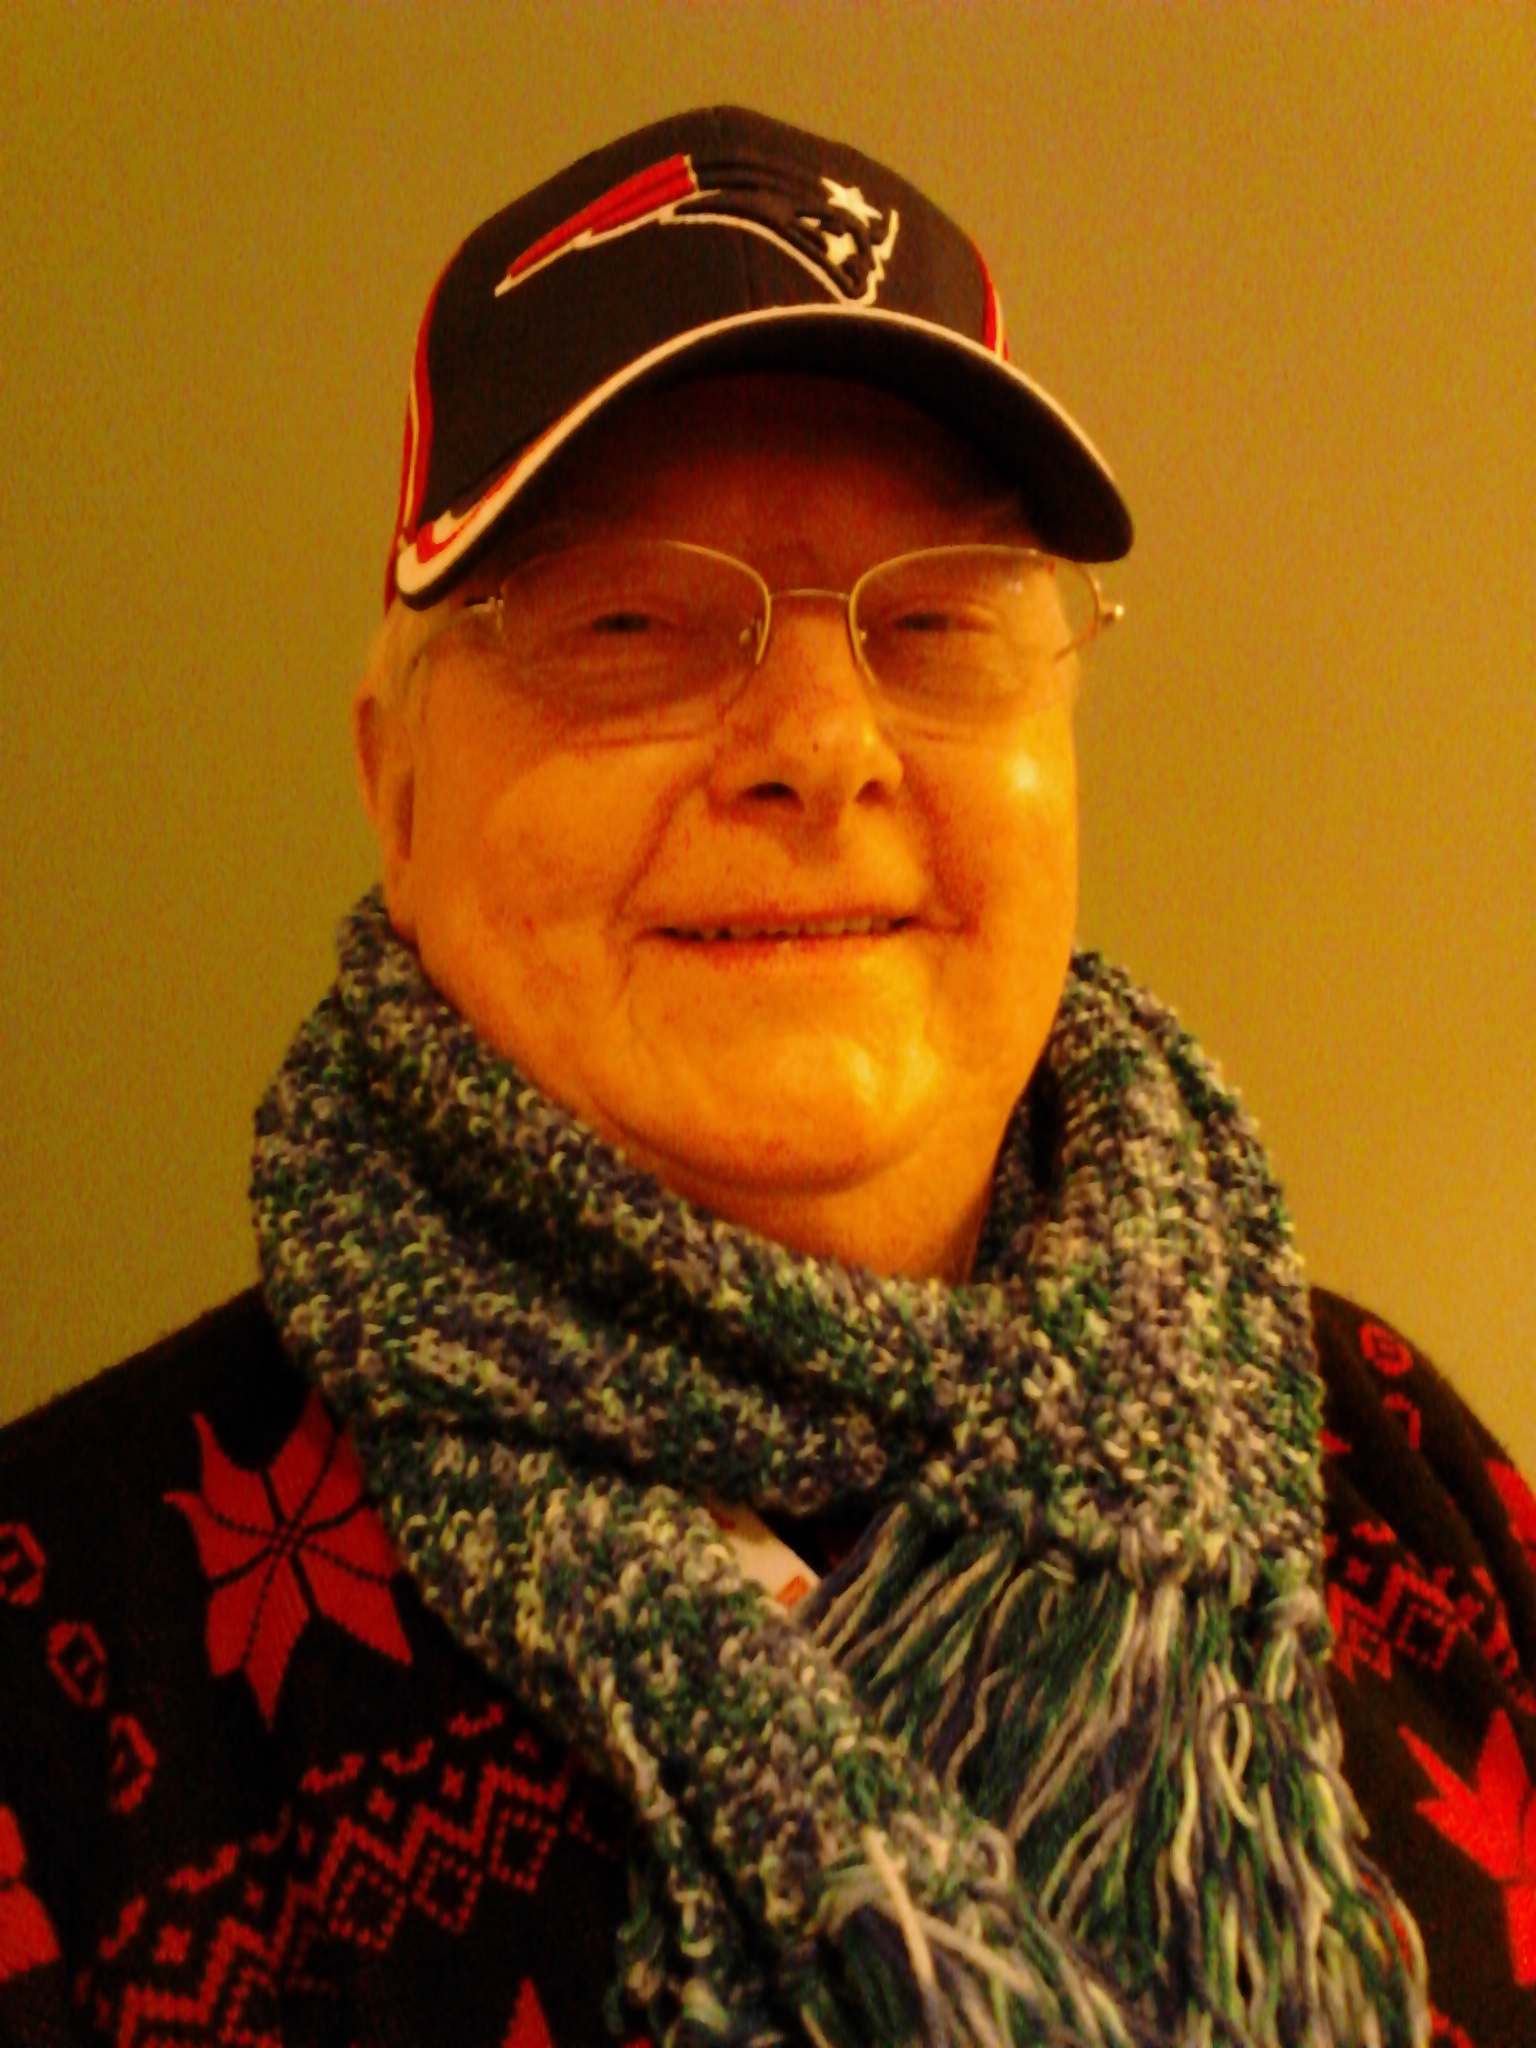 New hat and scarf, Christmas 2012